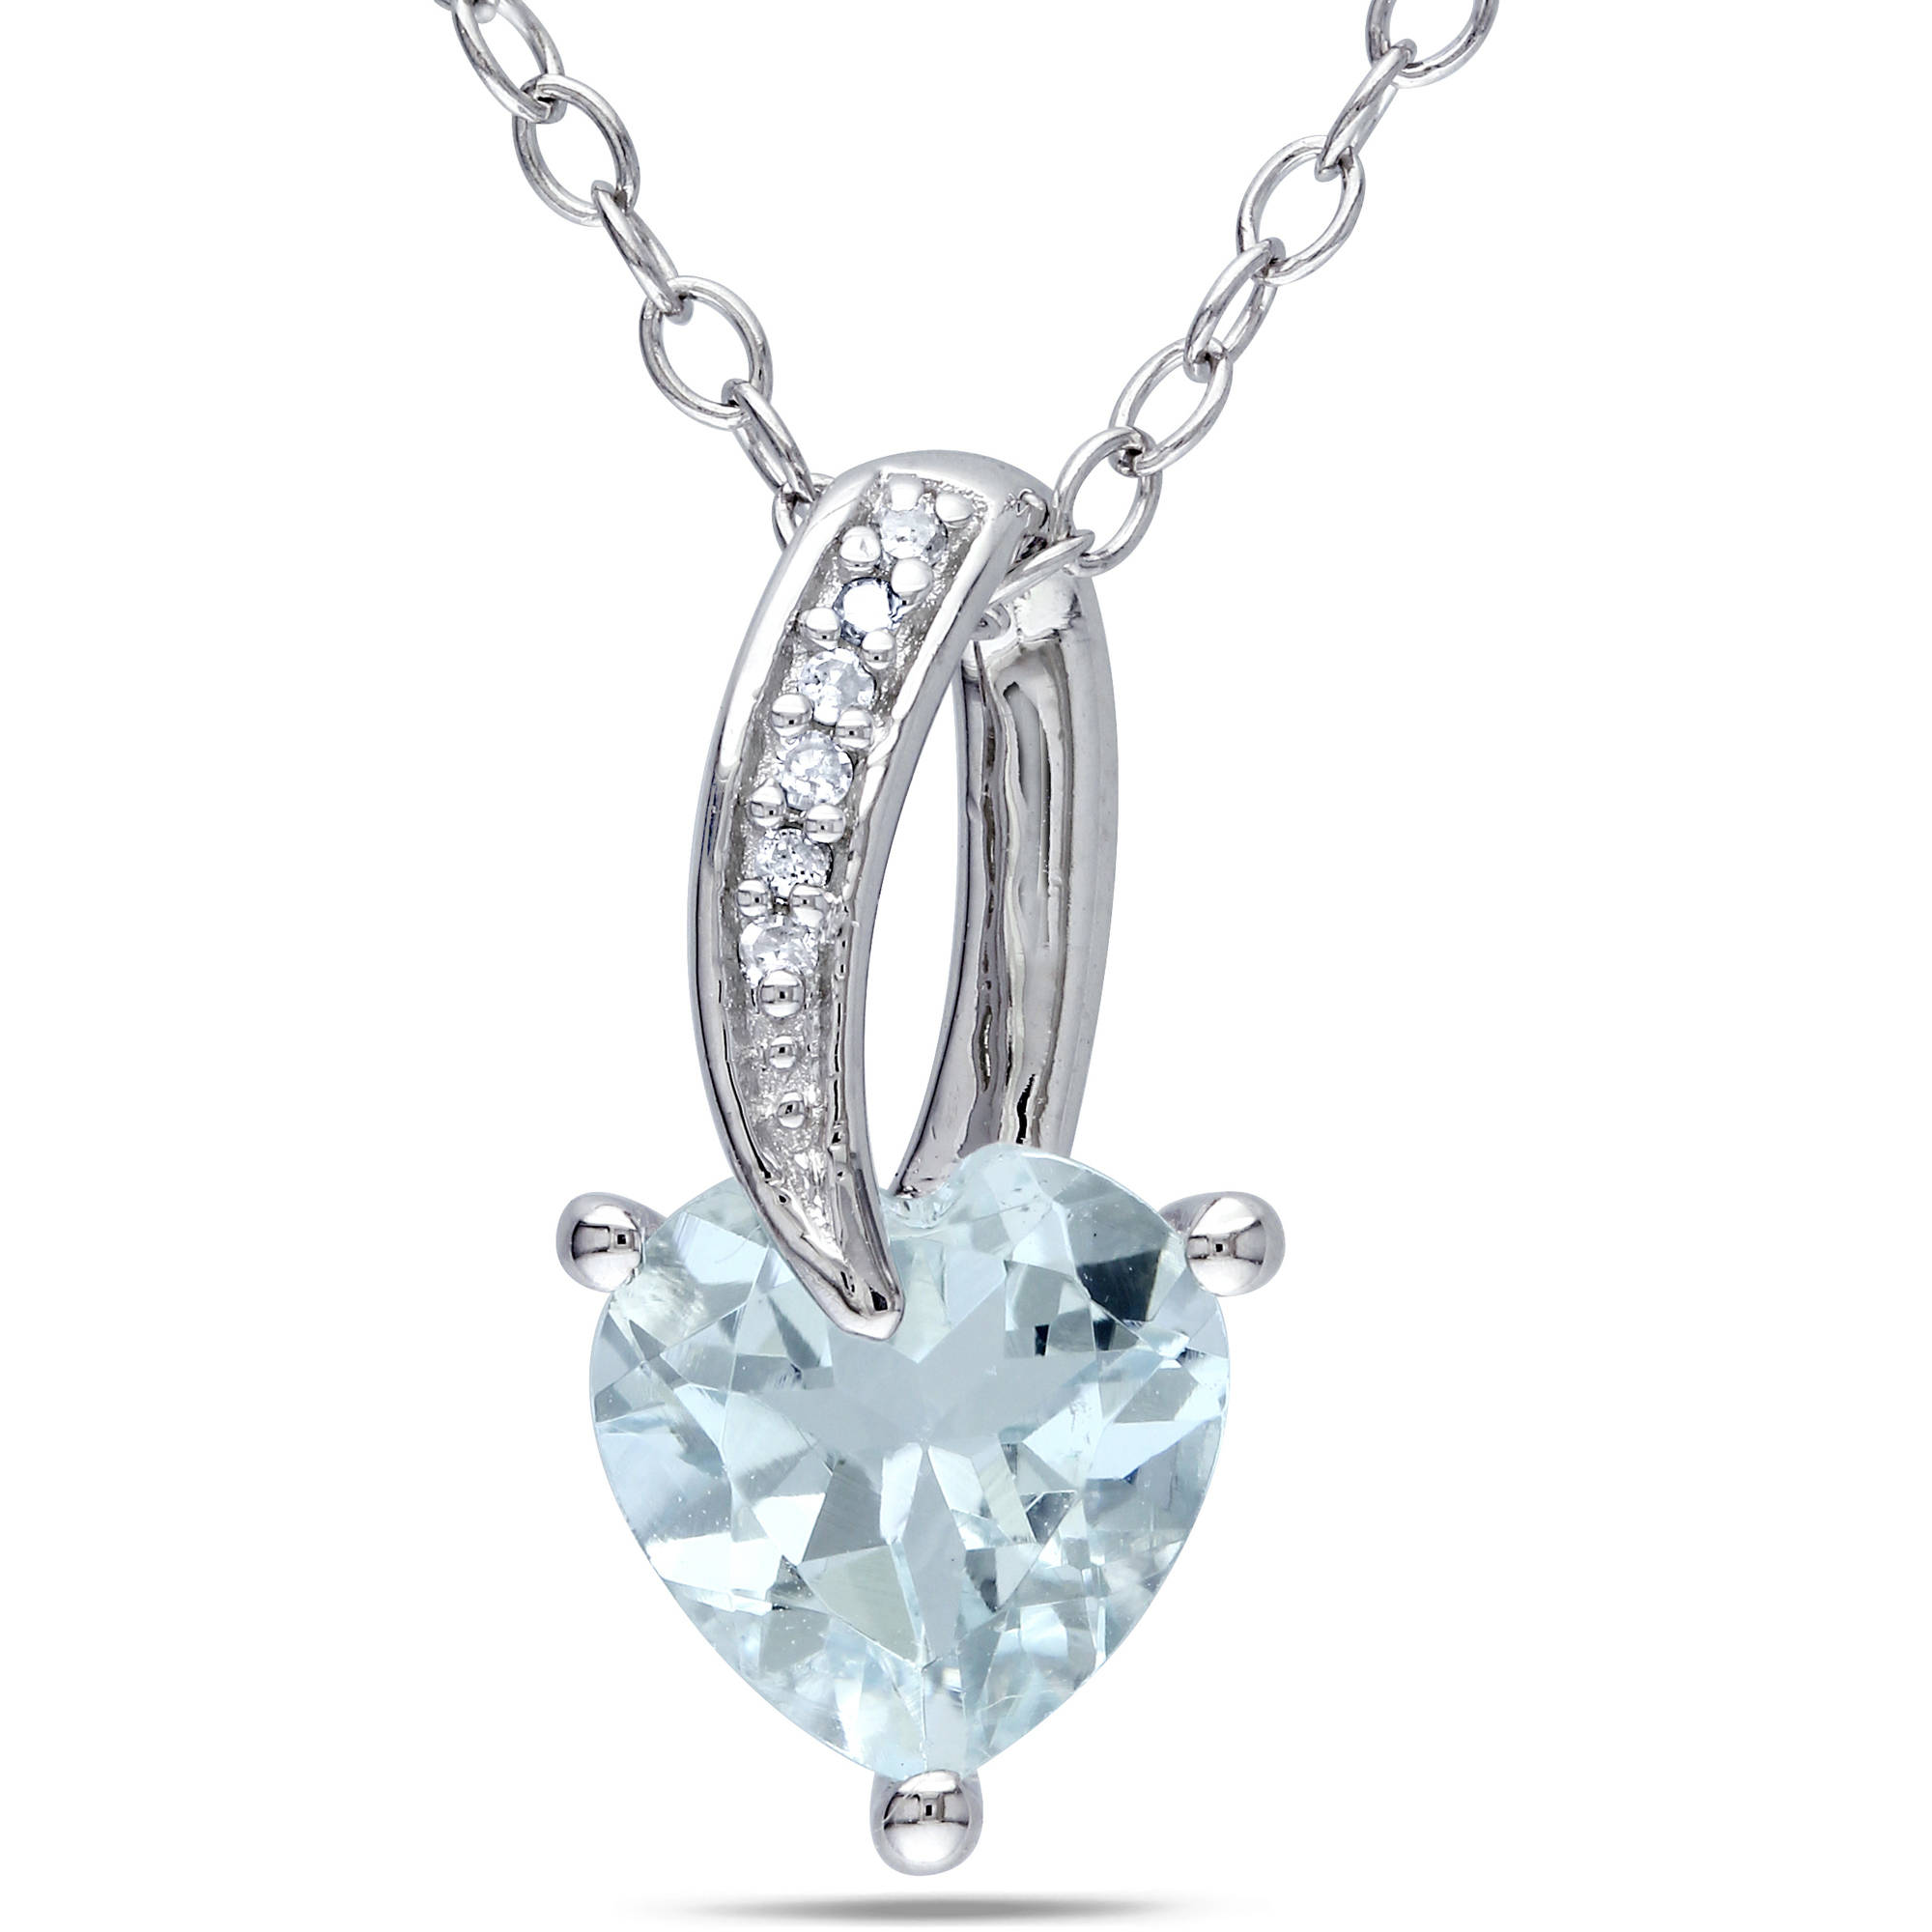 Tangelo 1-1/2 Carat T.G.W. Aquamarine and Diamond-Accent Sterling Silver Heart Pendant, 18